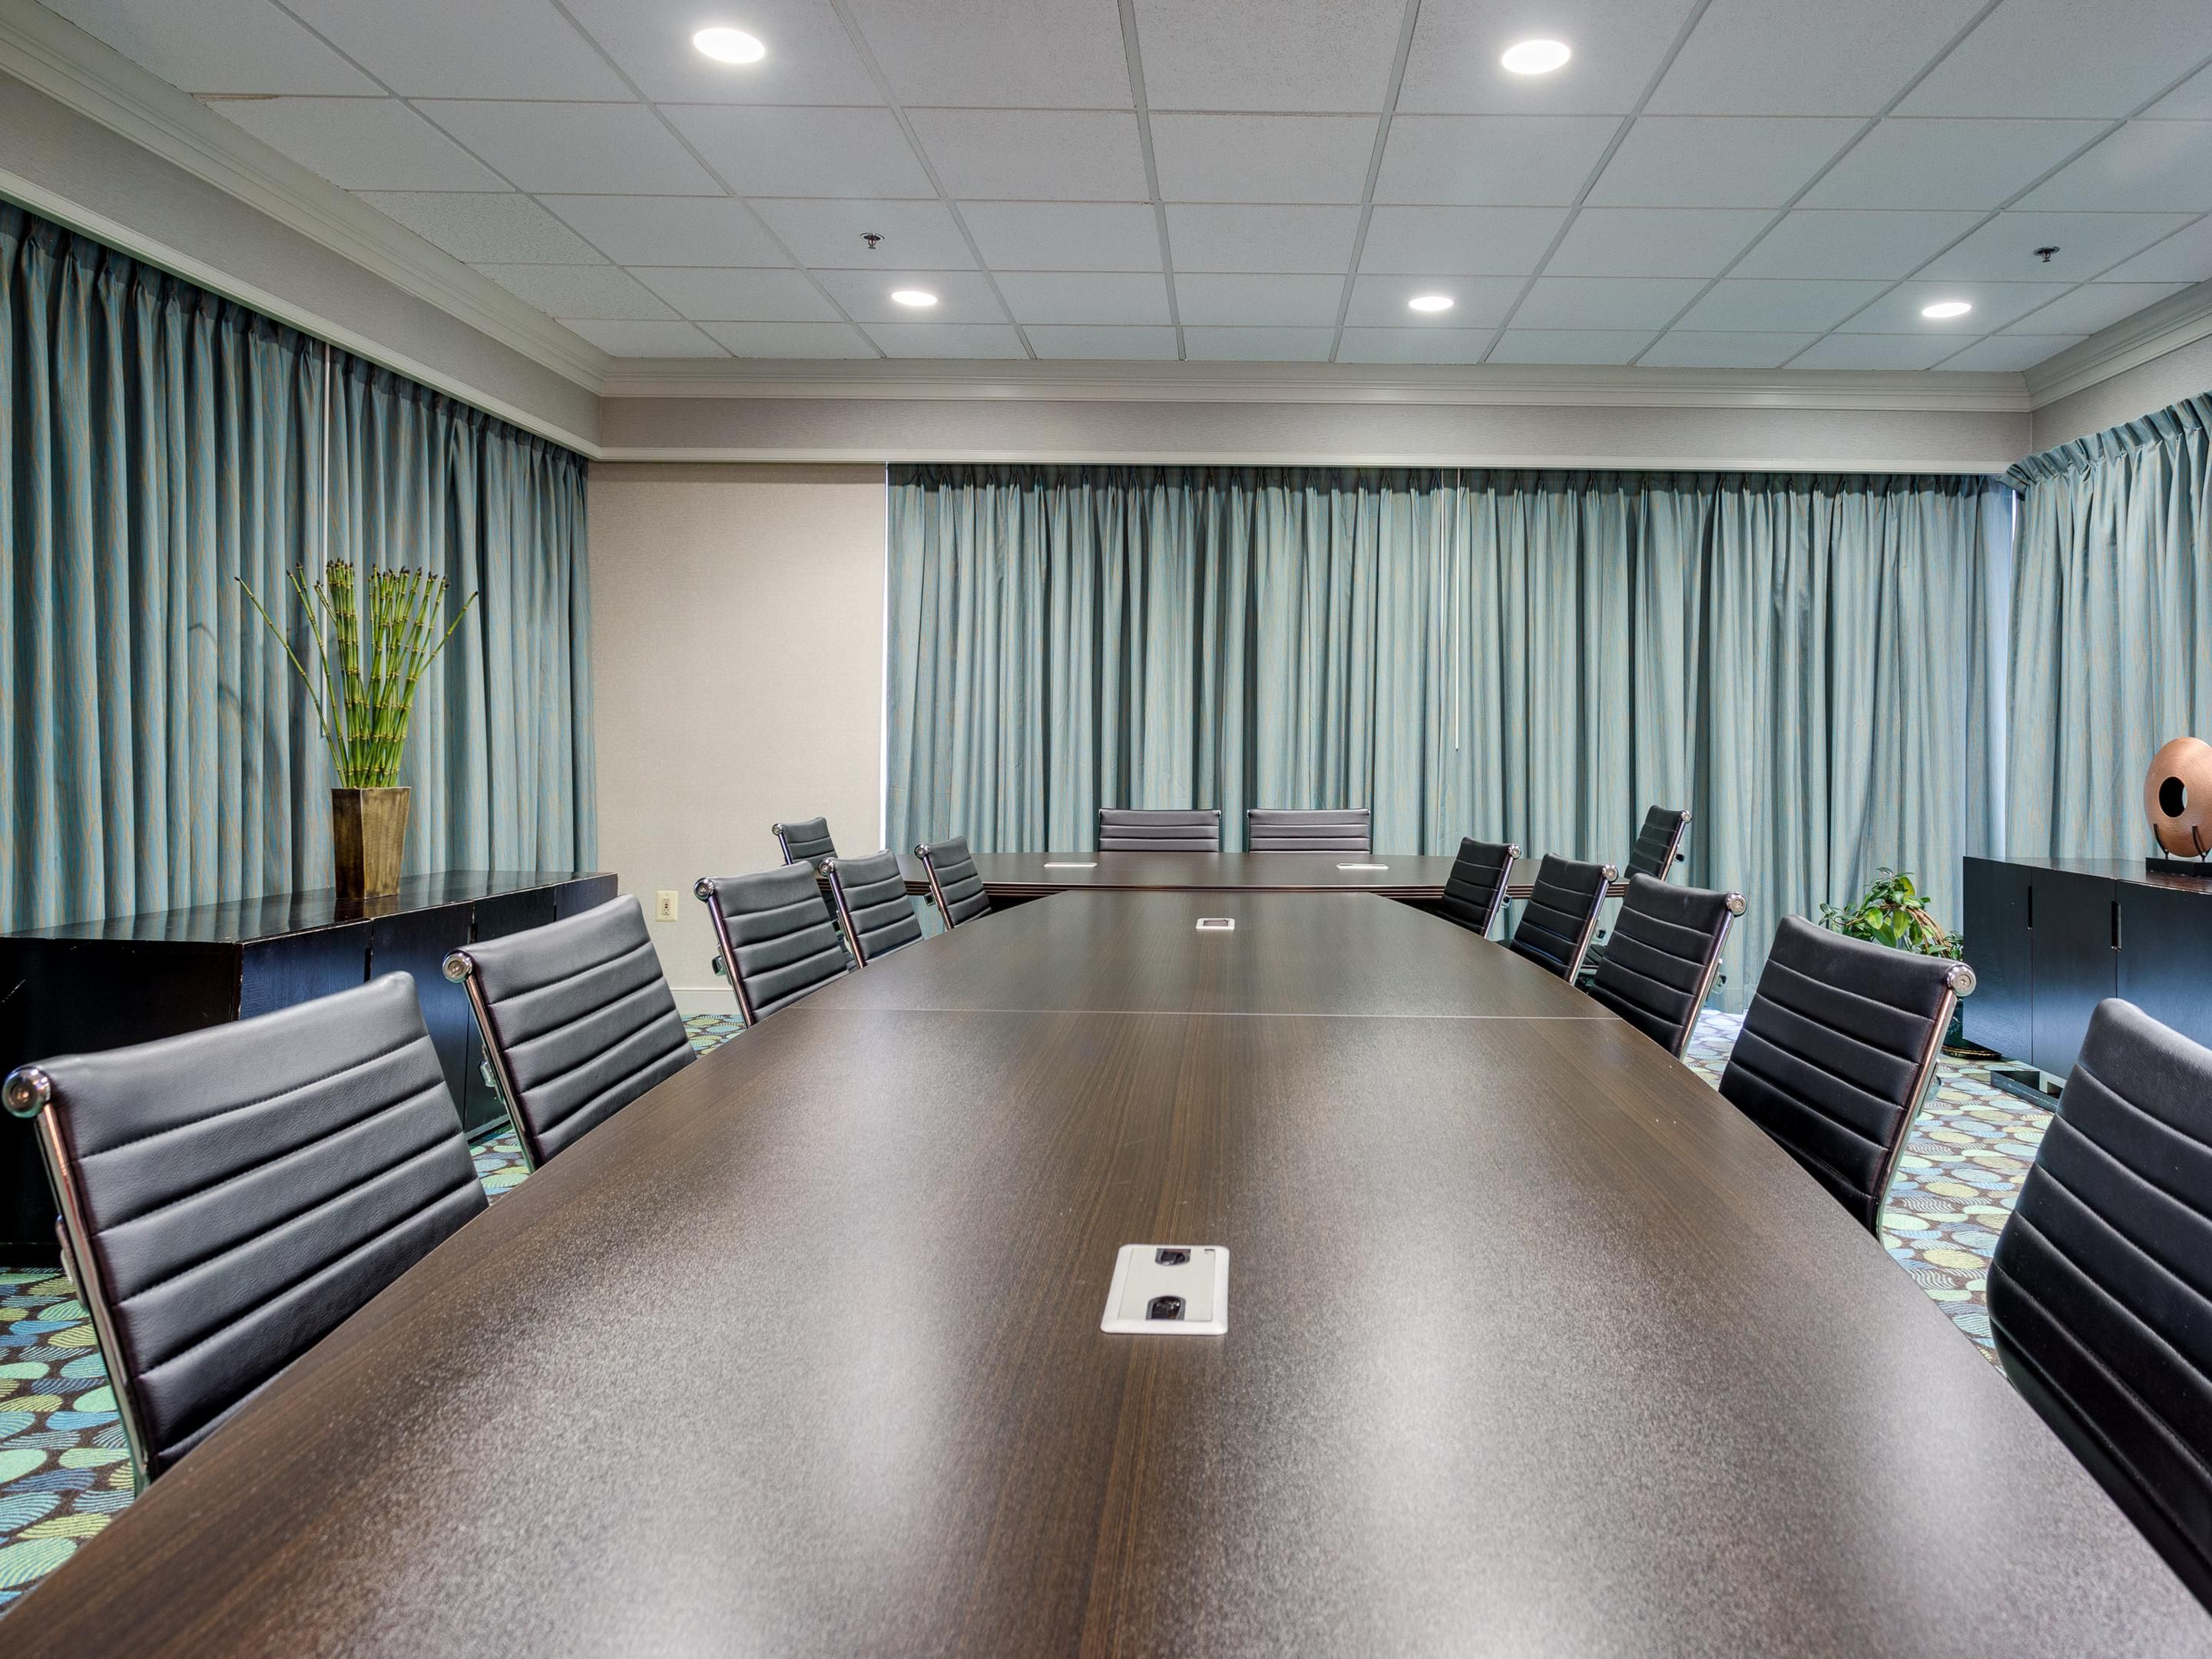 Picture your next meeting here!